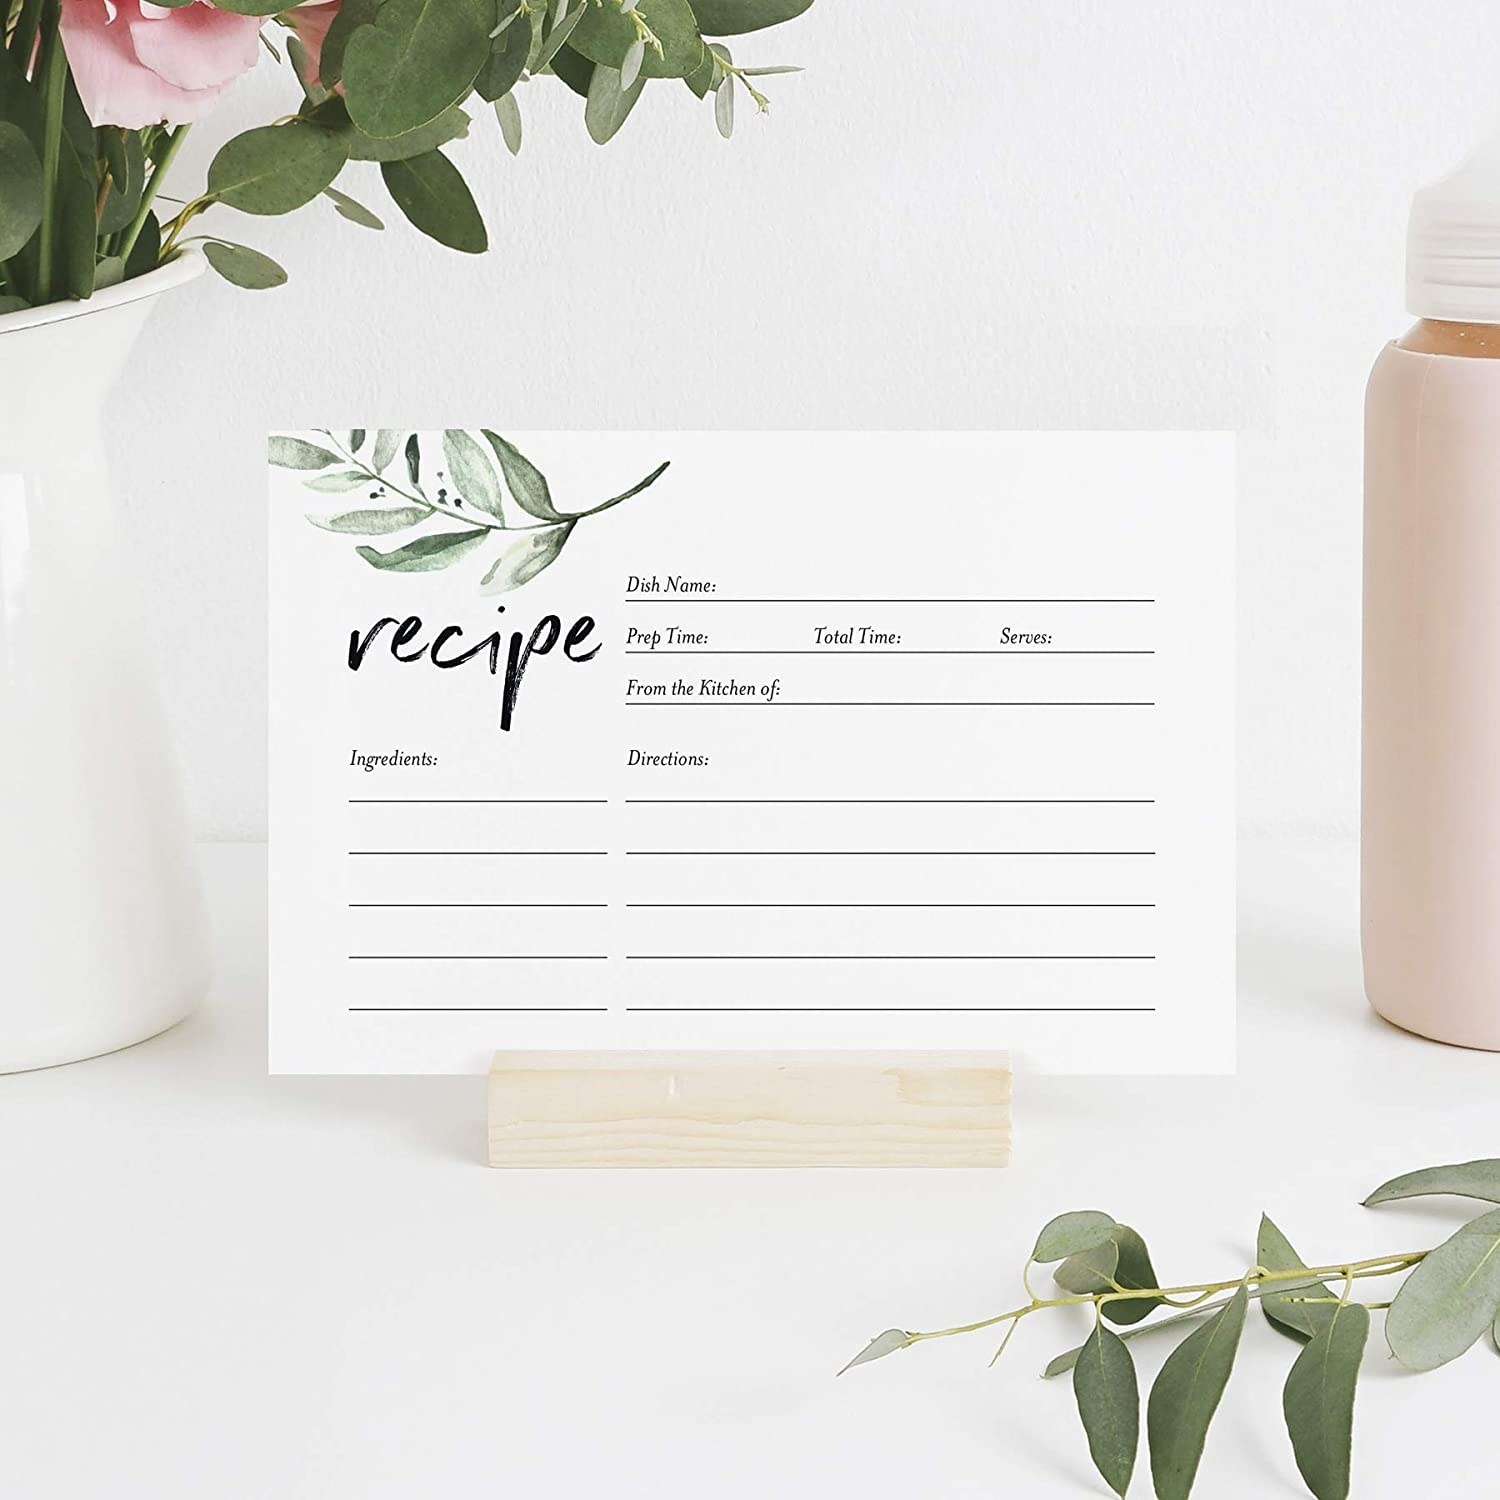 A recipe card on a holder next to a plant and a water bottle